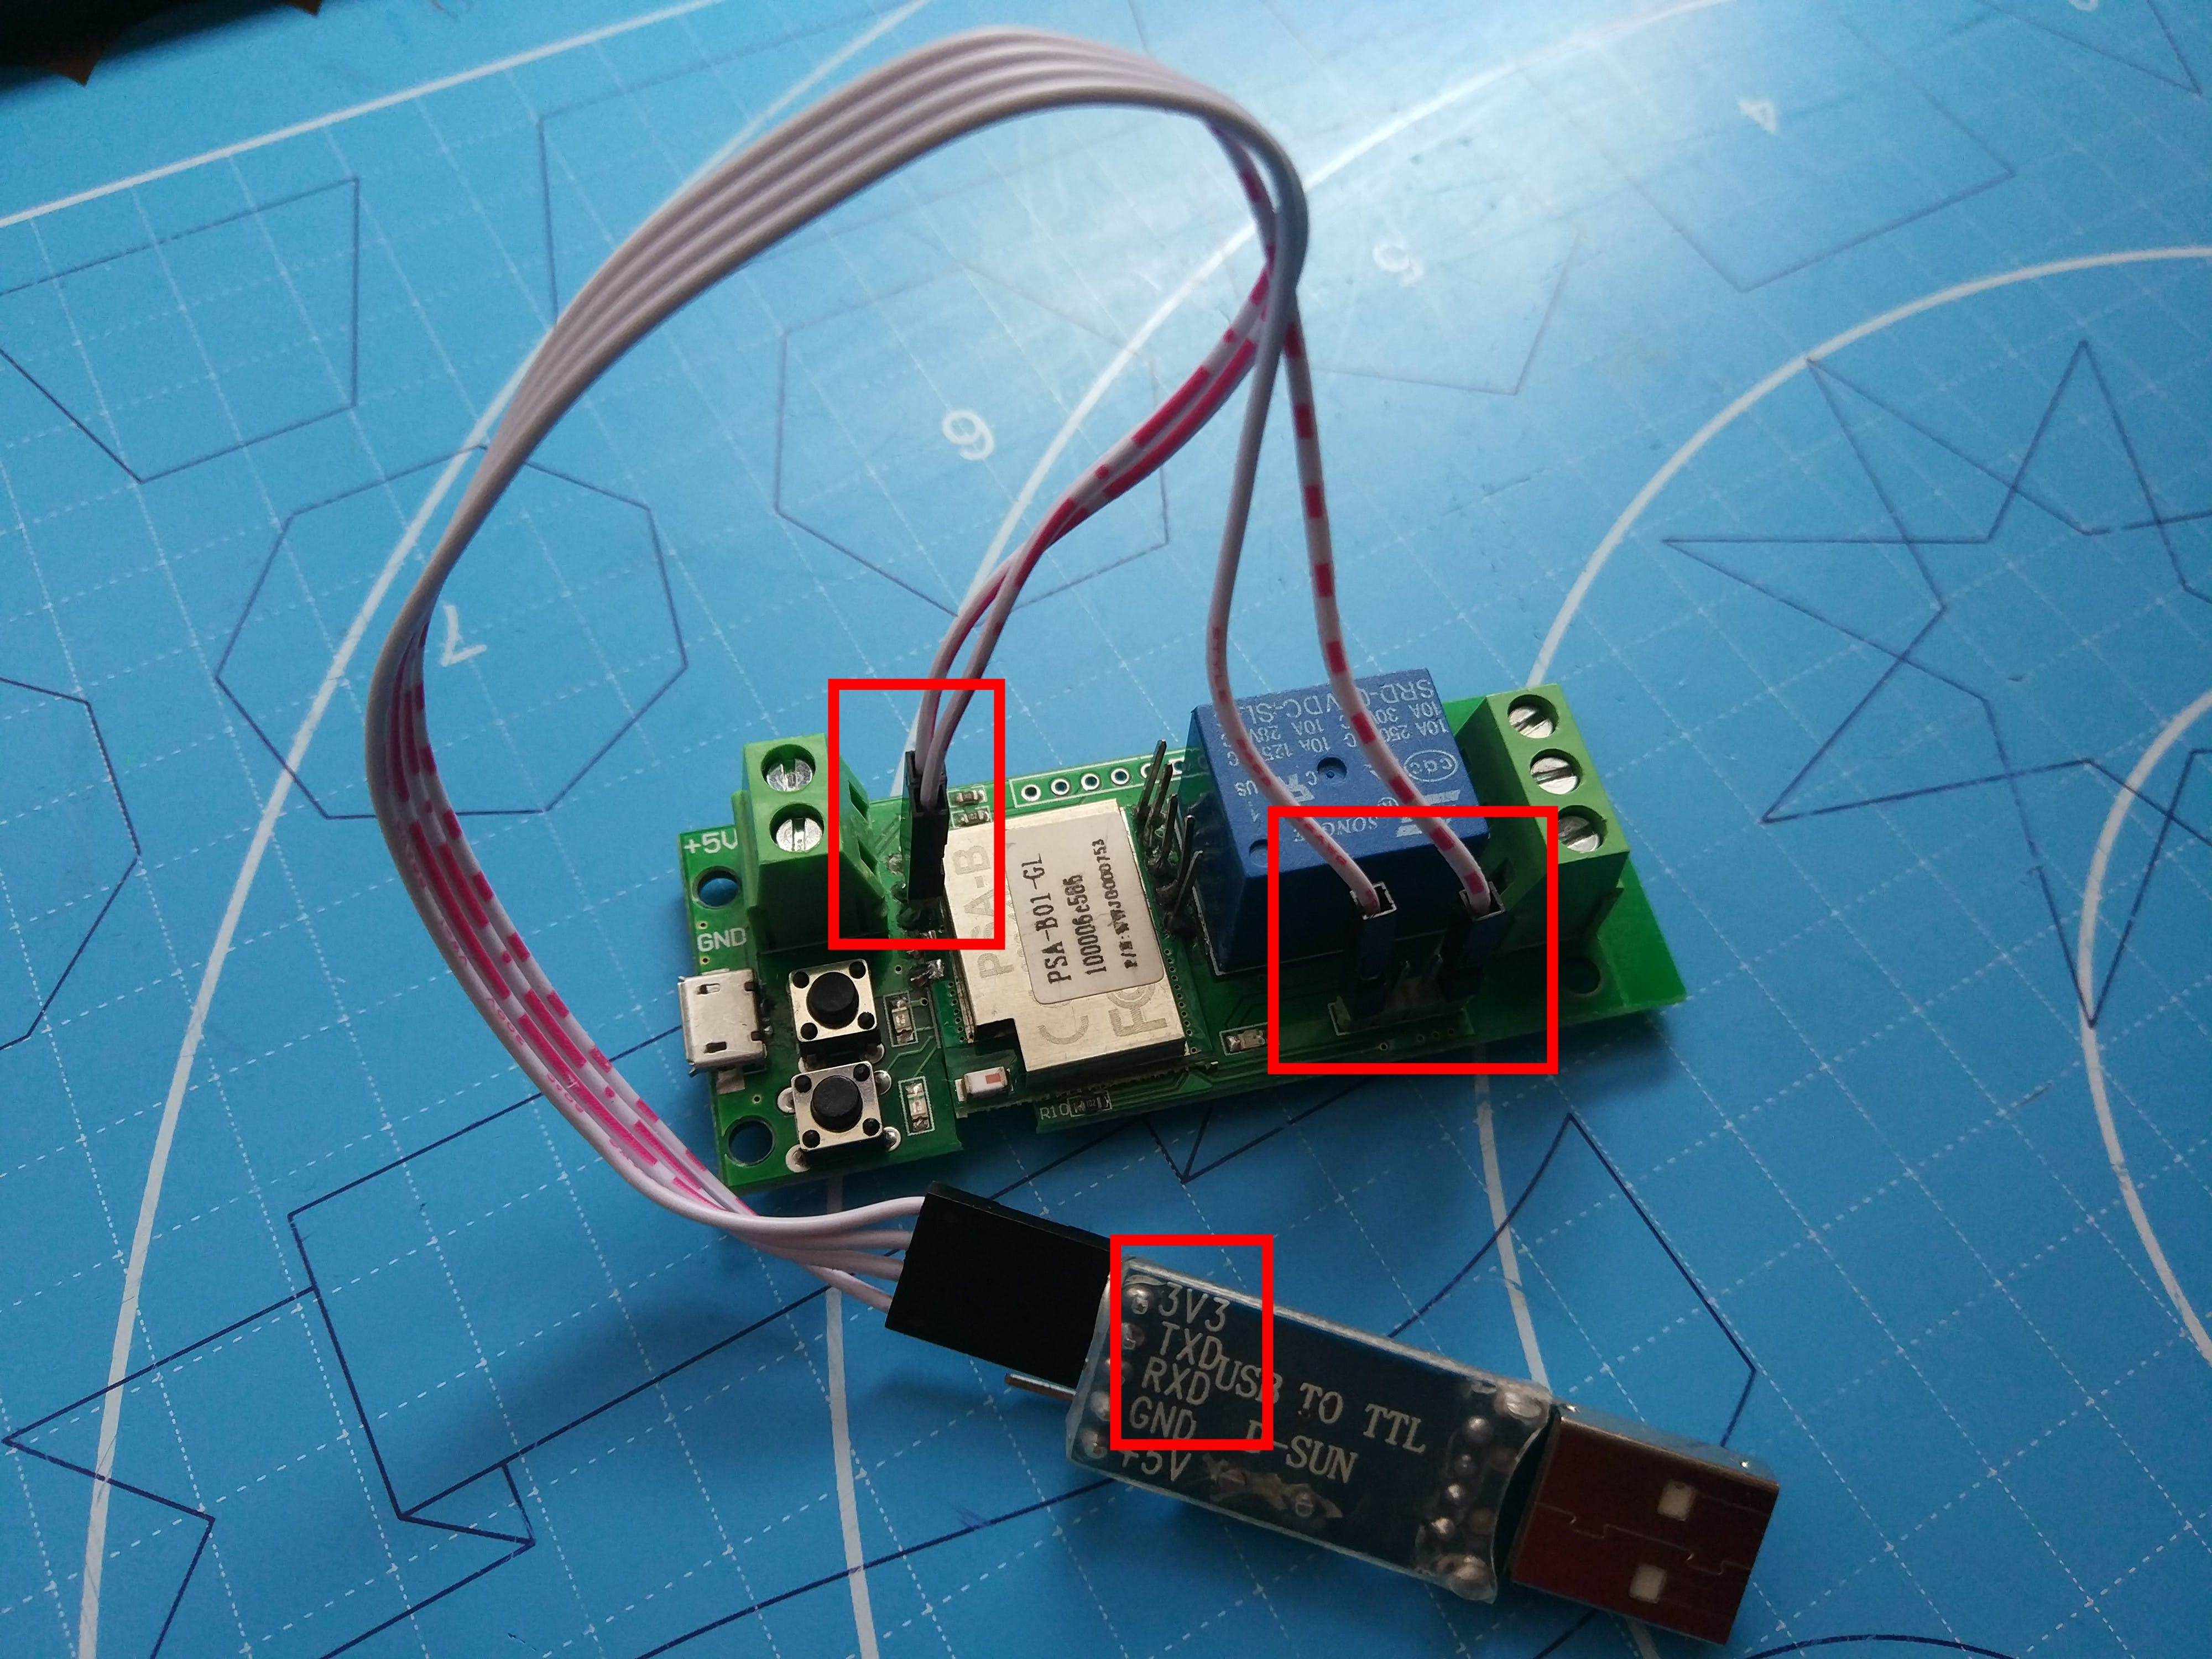 Connected USB-to-Serial device wires to ITEAD 1-CH WiFi Switch soldered pins